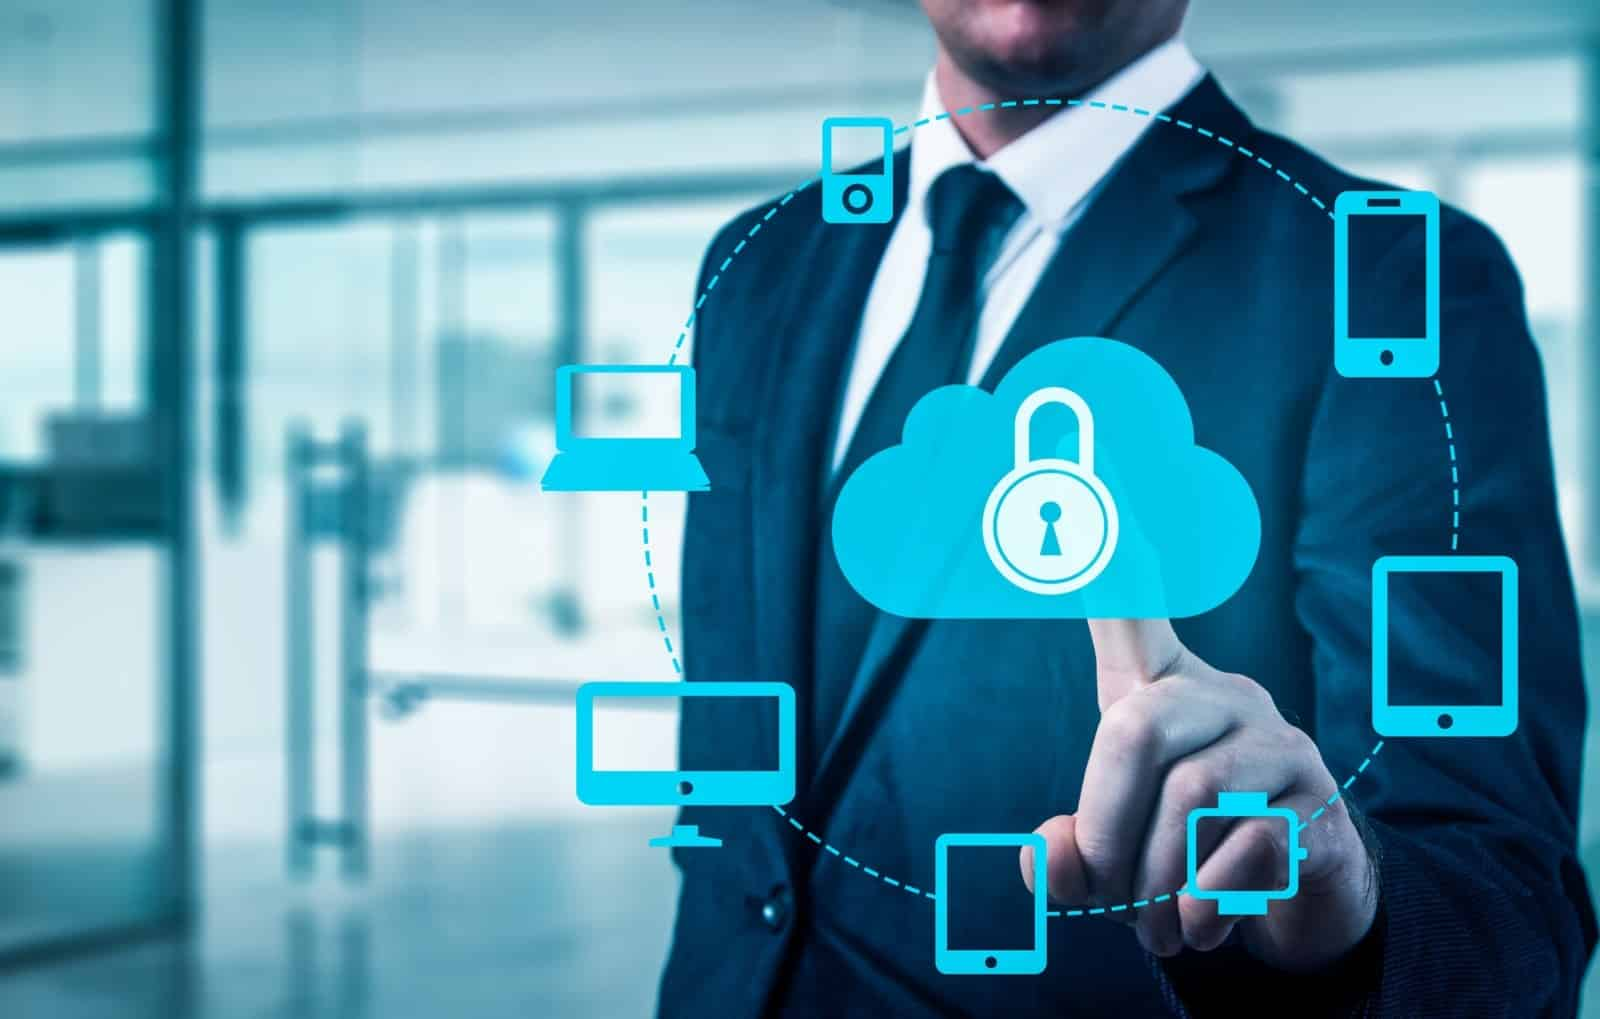 Protect Cloud Information Data Concept. Security And Safety Of Cloud Data | ITque